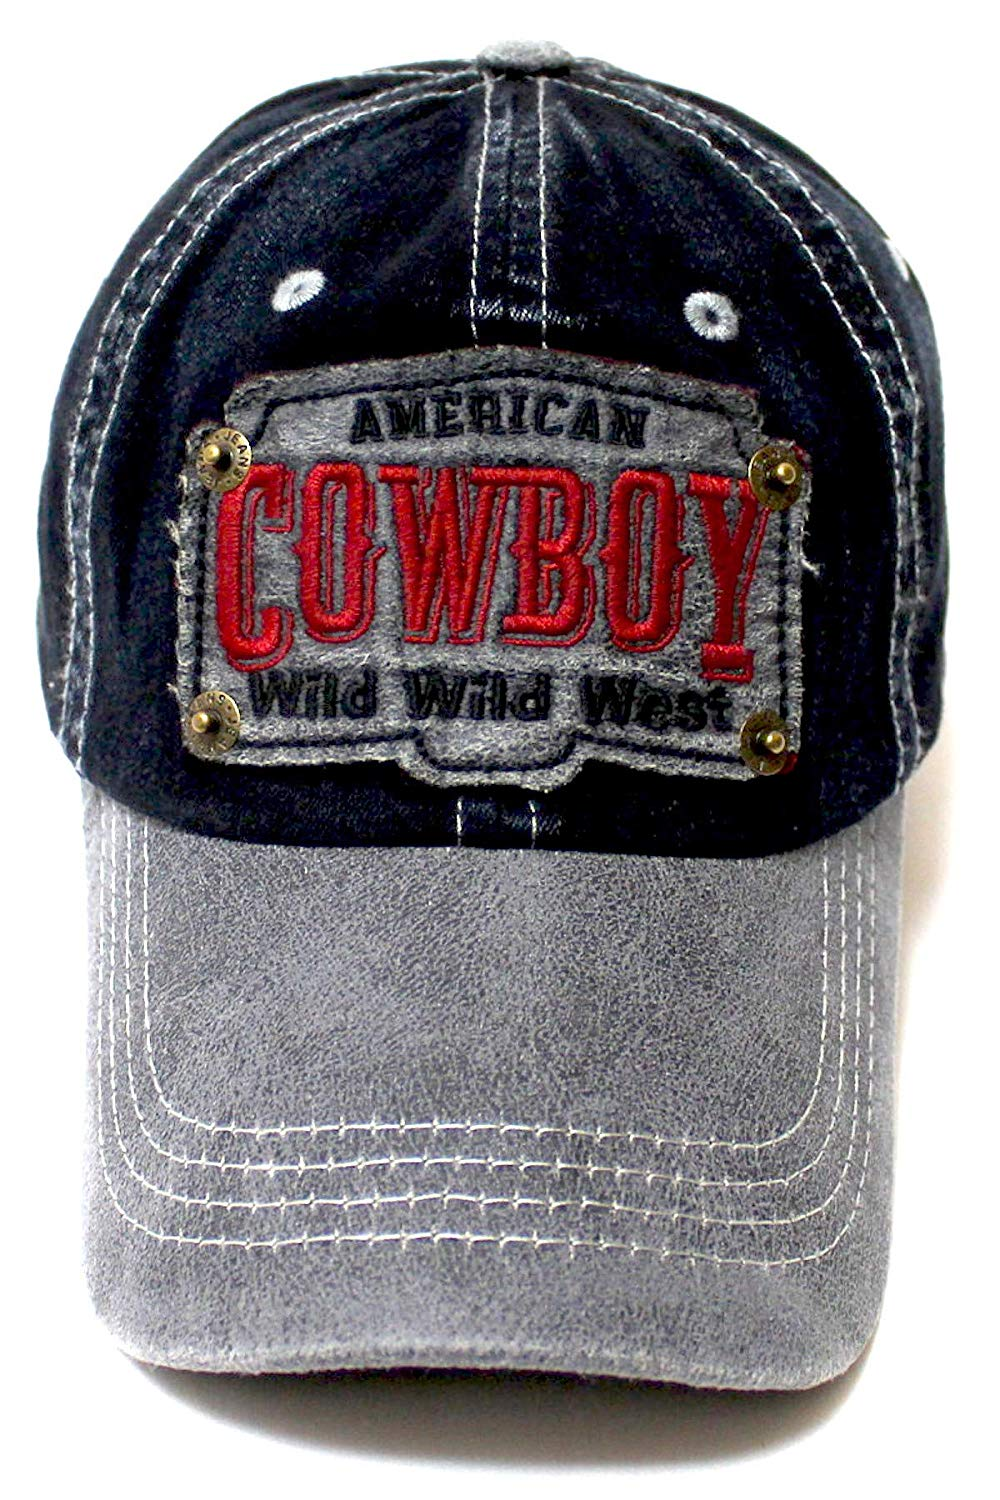 Classic Ballcap American Cowboy Wild Wild West Patch Embroidery Vintage Hat, Graphite Suede - Caps 'N Vintage